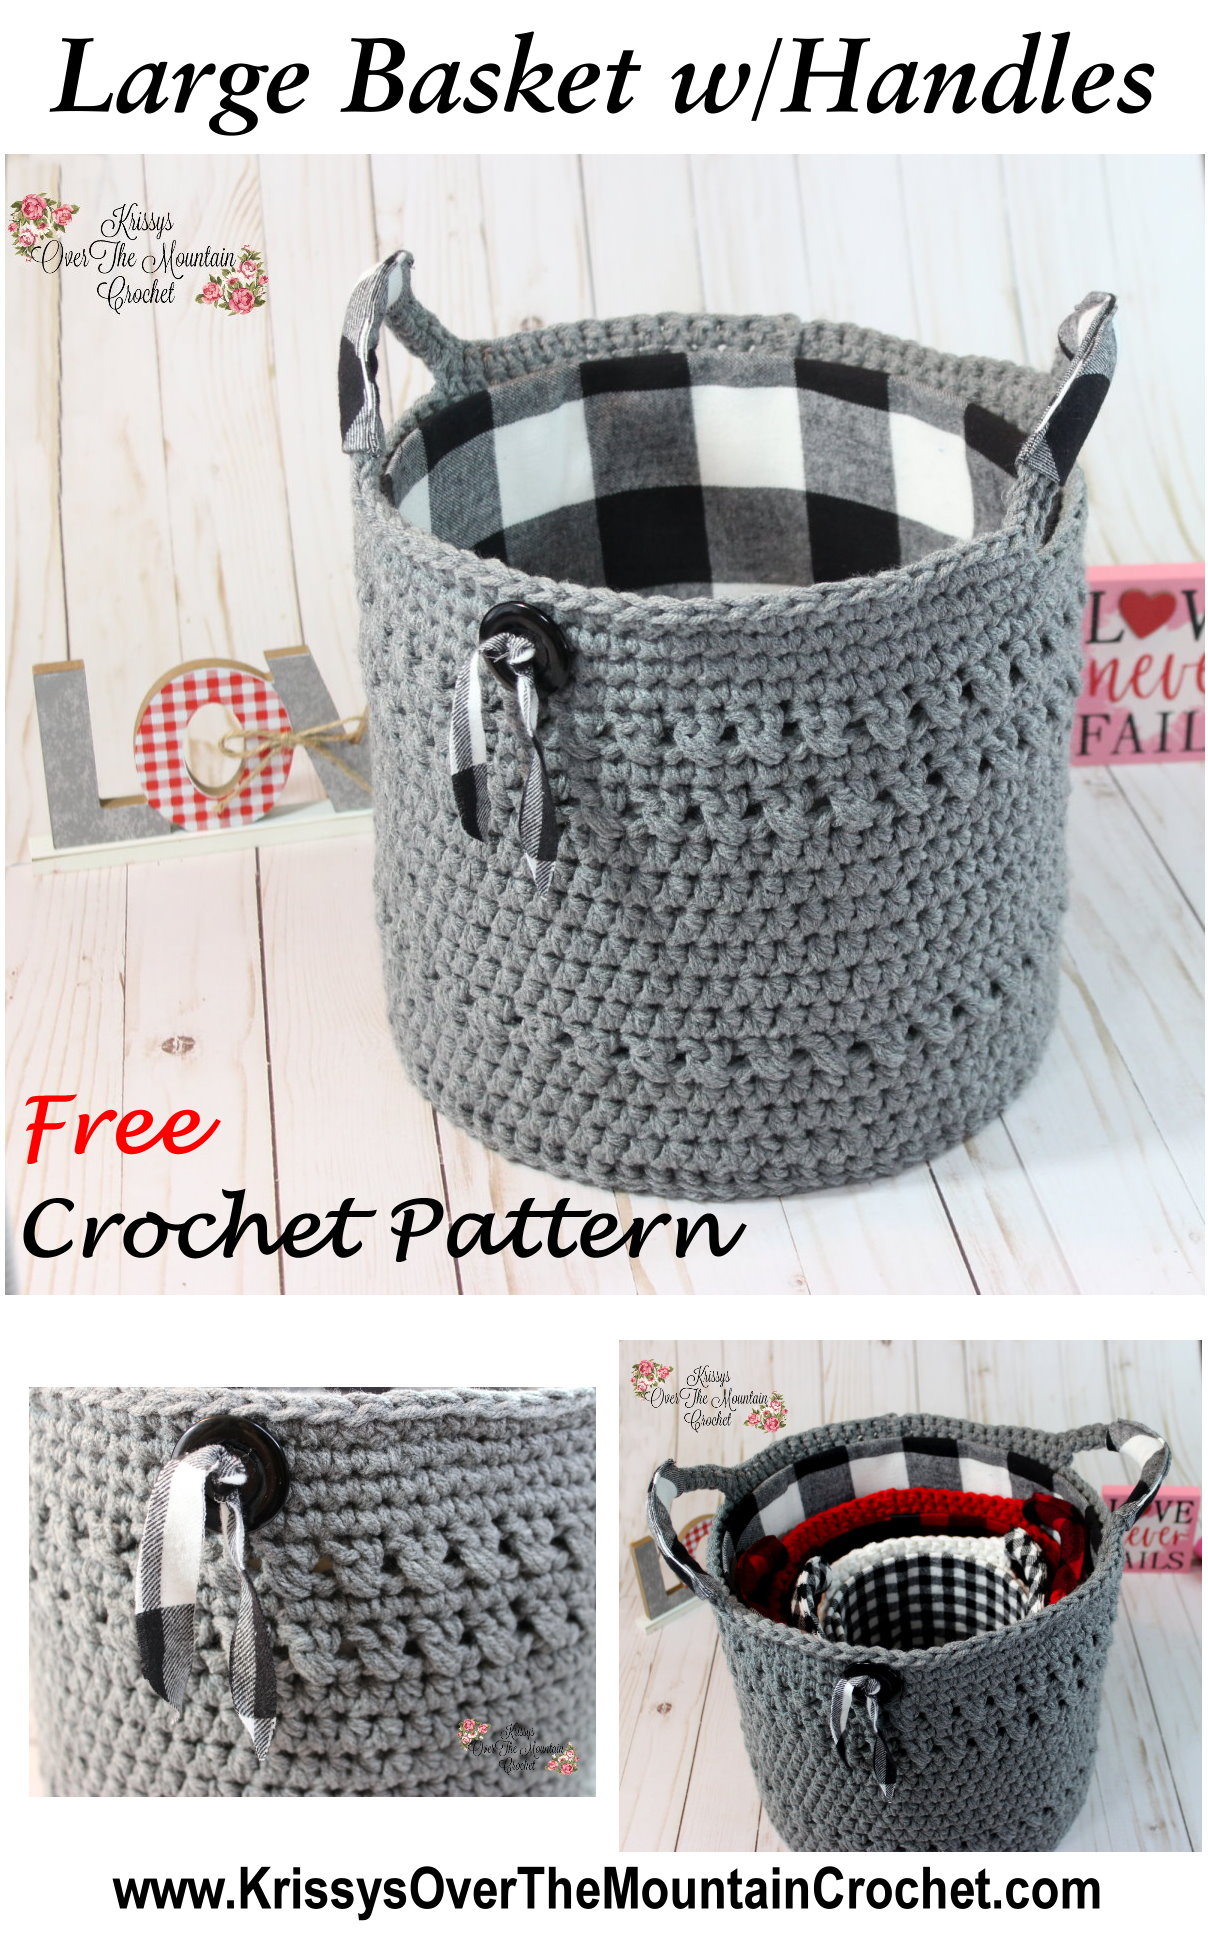 Such a lovely and large crocheted basket. The handles are wrapped in flannel and the vintage button with a bit of matching flannel make it so much fun.